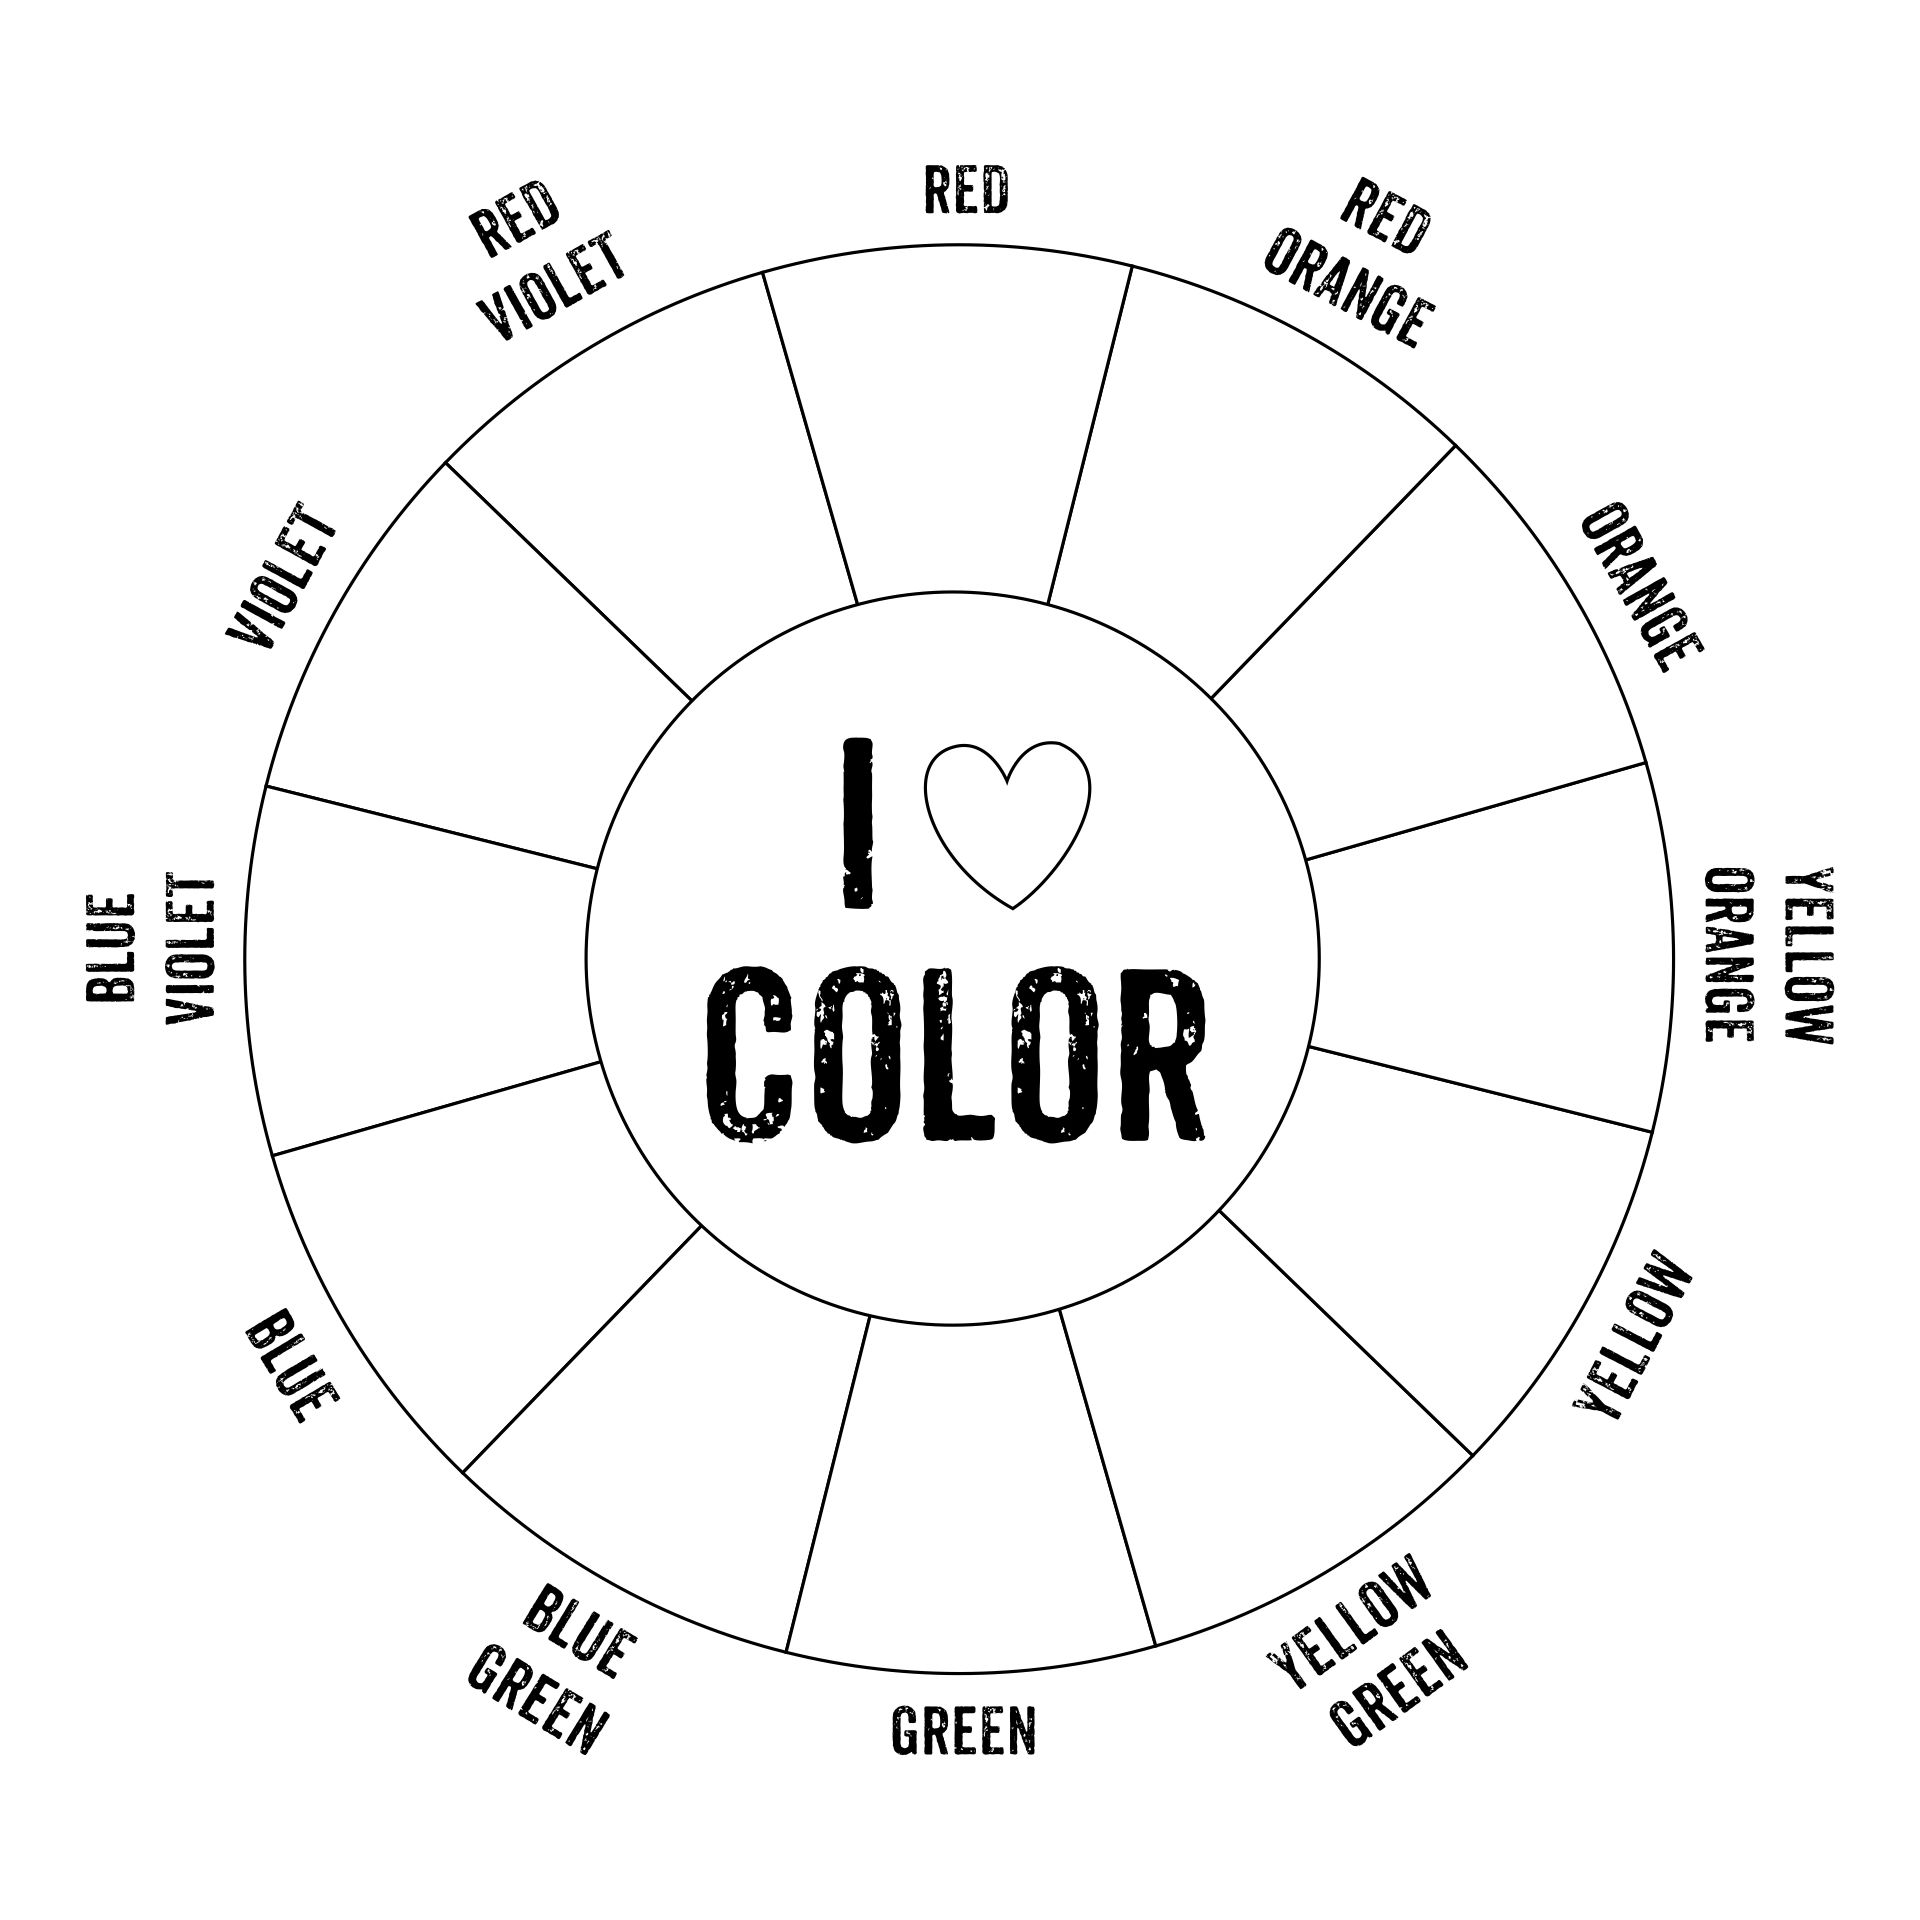 6 best images of color wheel printable for students blank color wheel chart printable blank. Black Bedroom Furniture Sets. Home Design Ideas